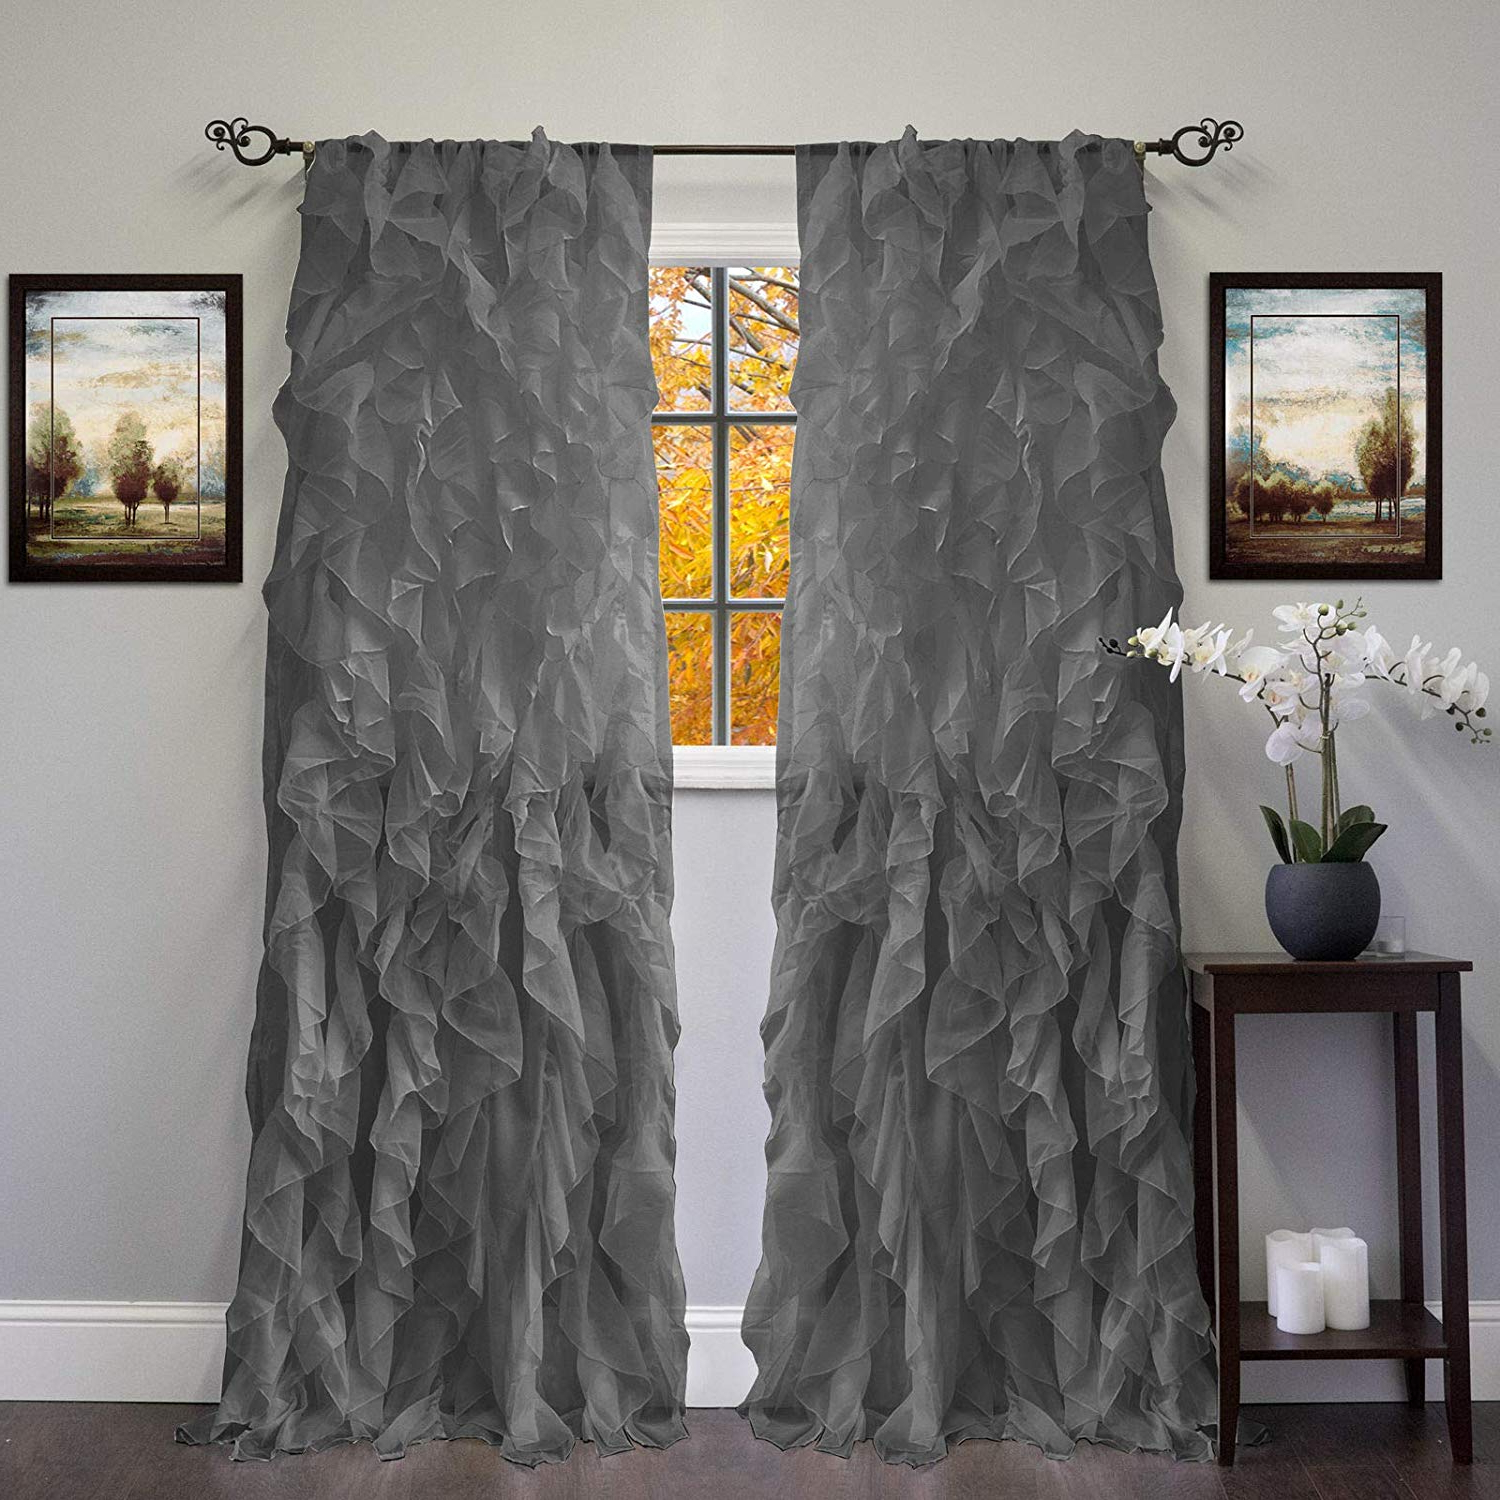 Amazon: Dn Lin New Chic Sheer Voile Vertical Ruffled For Well Liked Vertical Ruffled Waterfall Valance And Curtain Tiers (View 14 of 20)